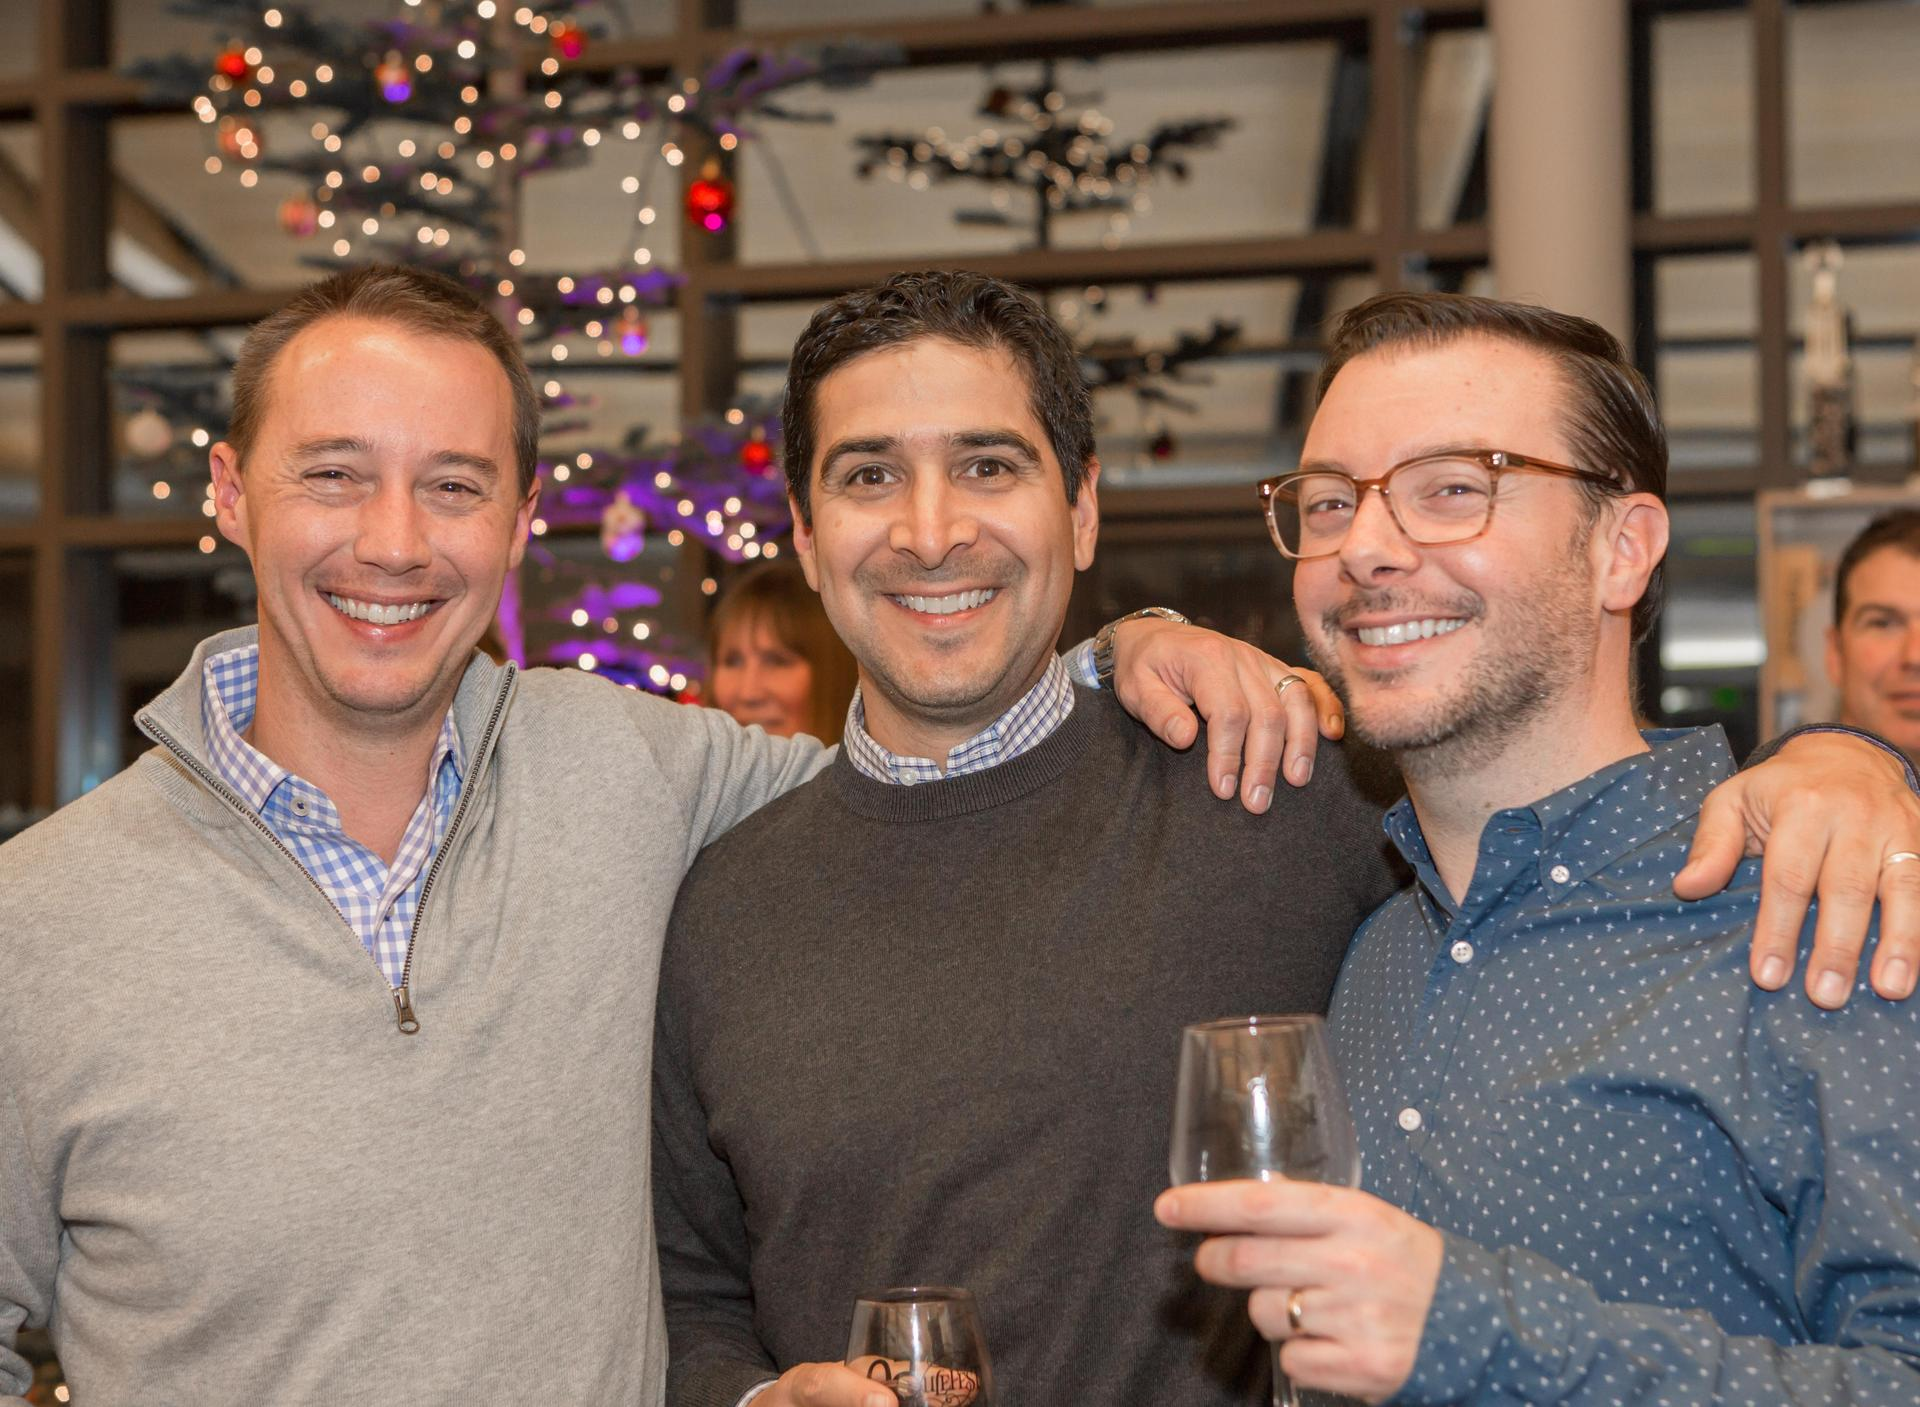 three men pose and smile at event